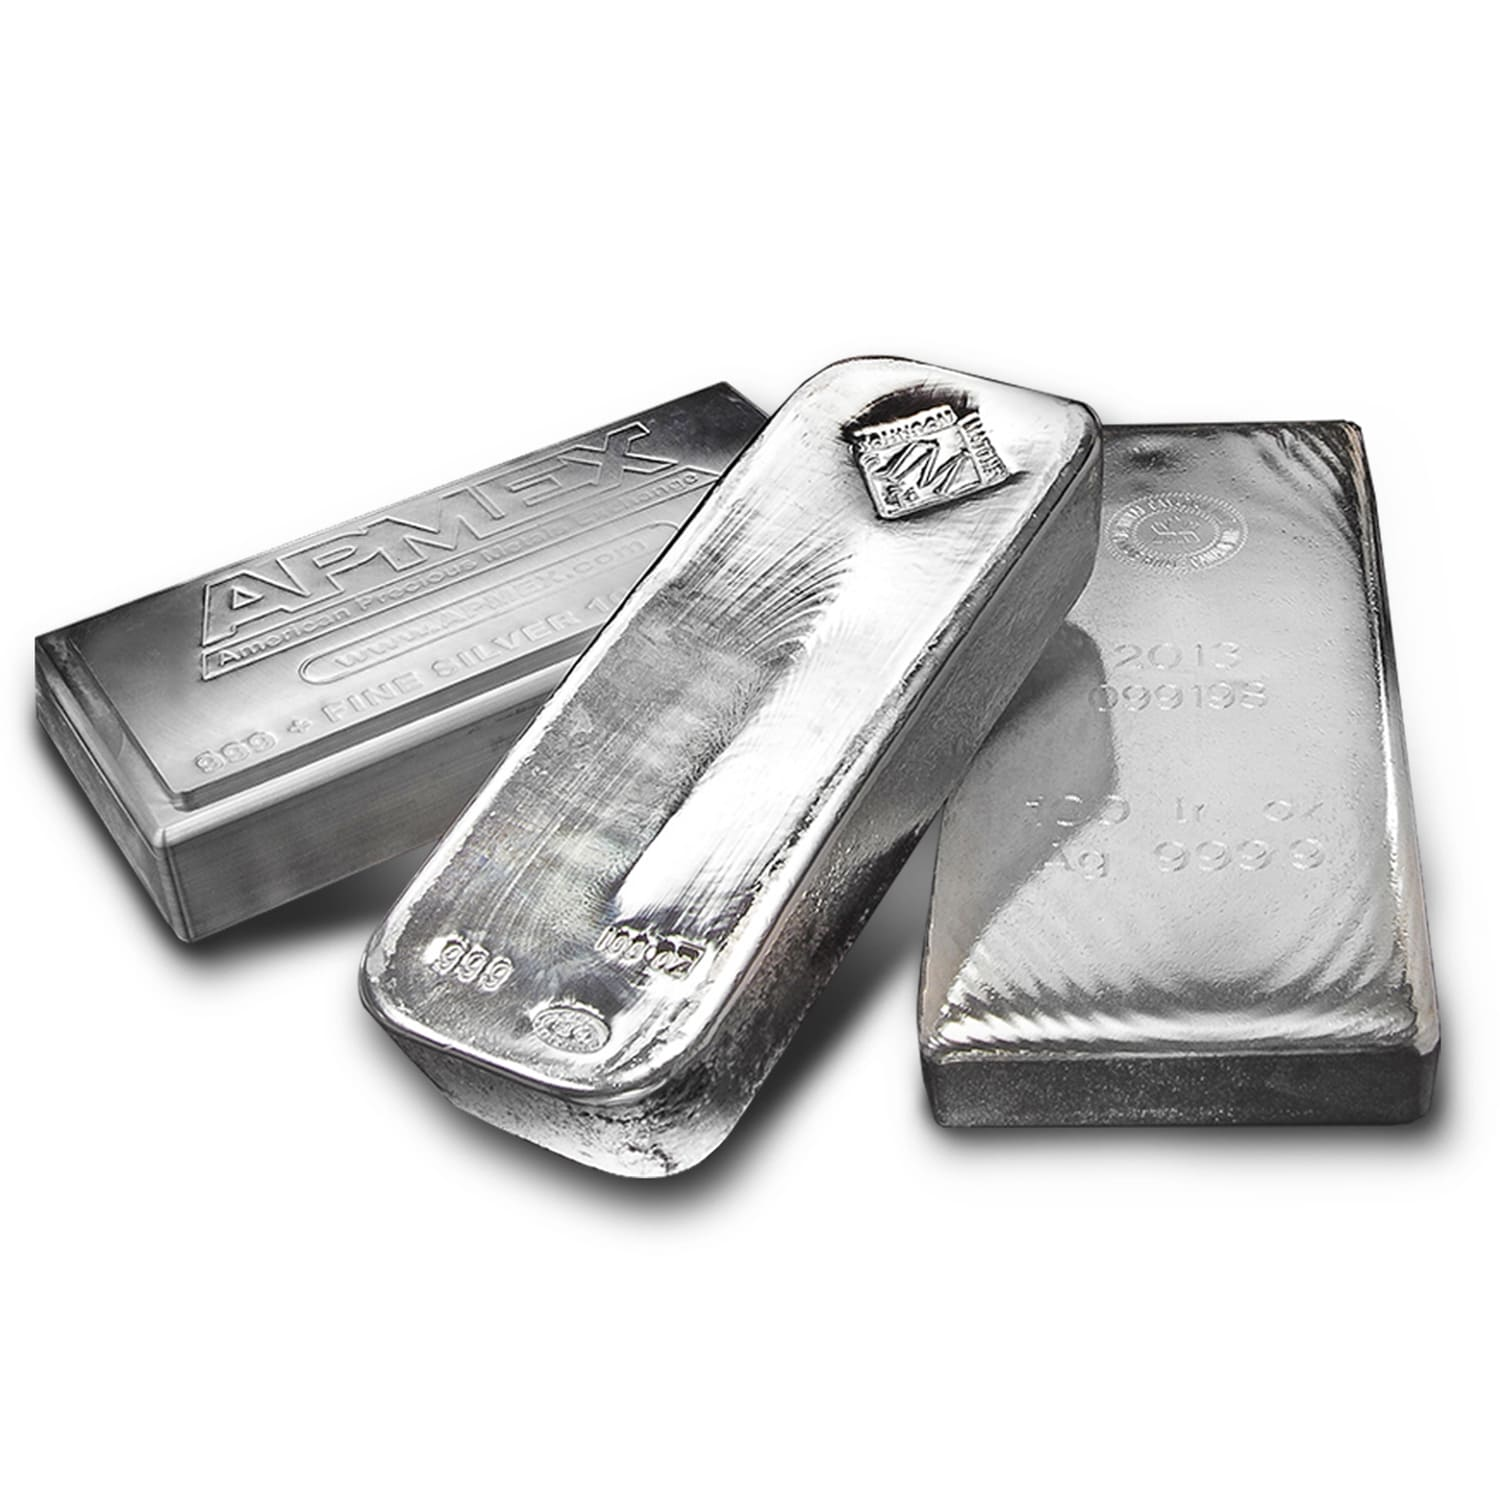 96.90 oz Silver Bar - Secondary Market